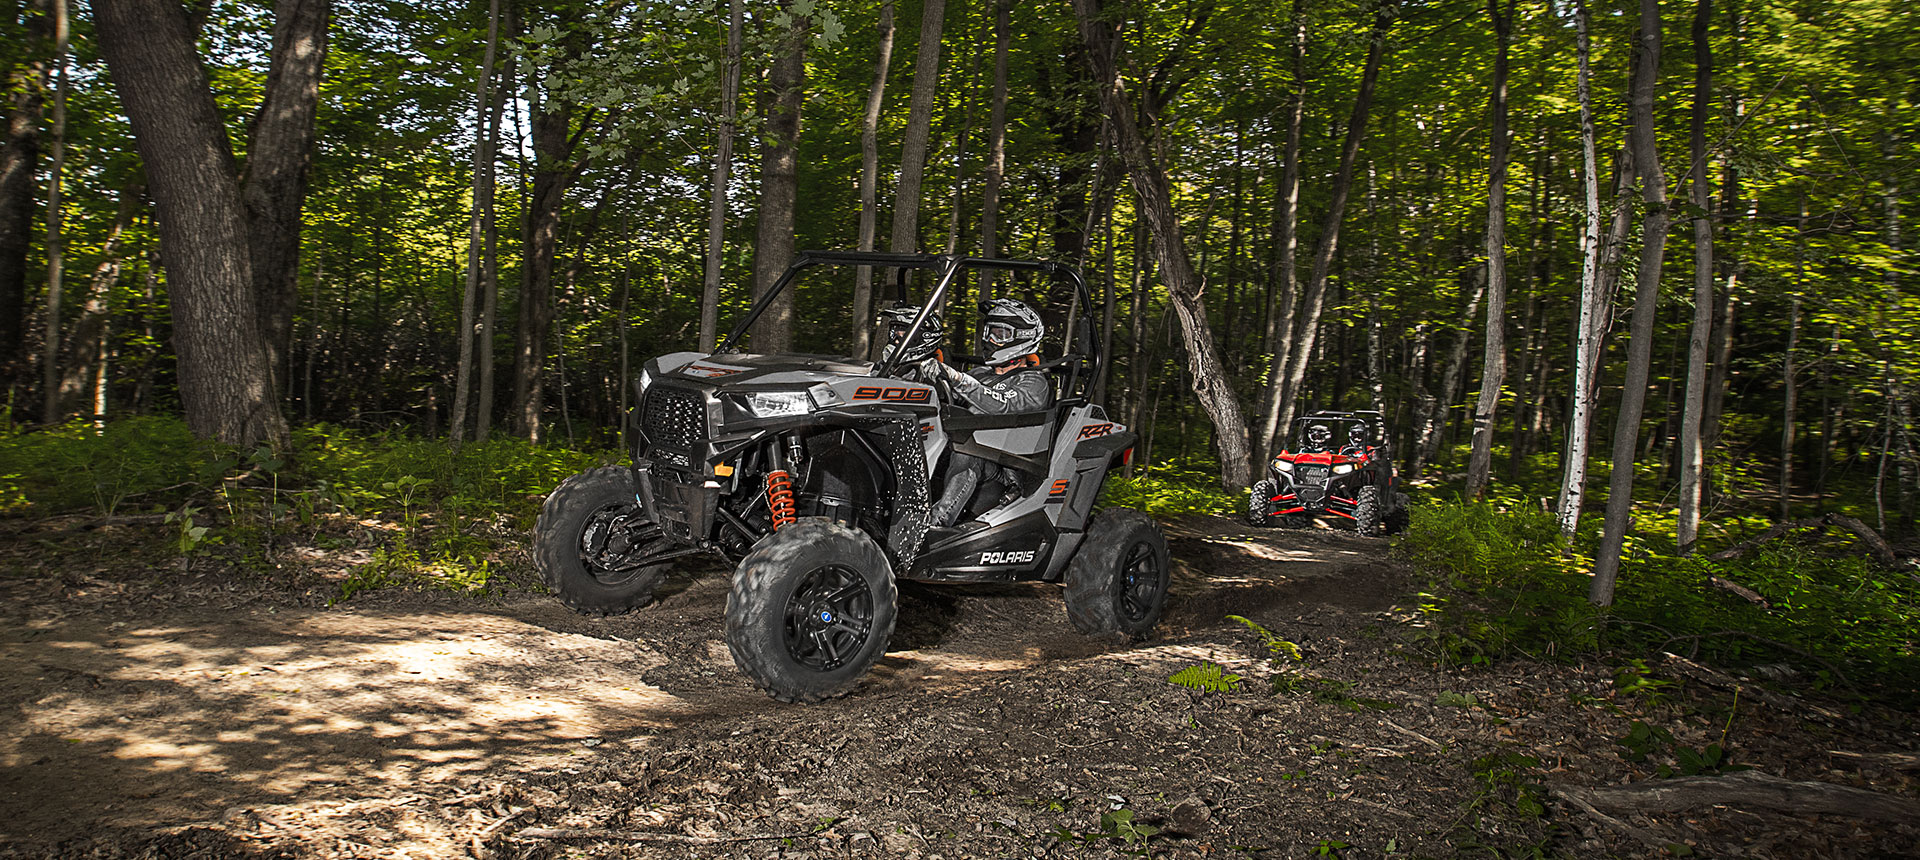 2019 Polaris RZR S 900 EPS in Sturgeon Bay, Wisconsin - Photo 9